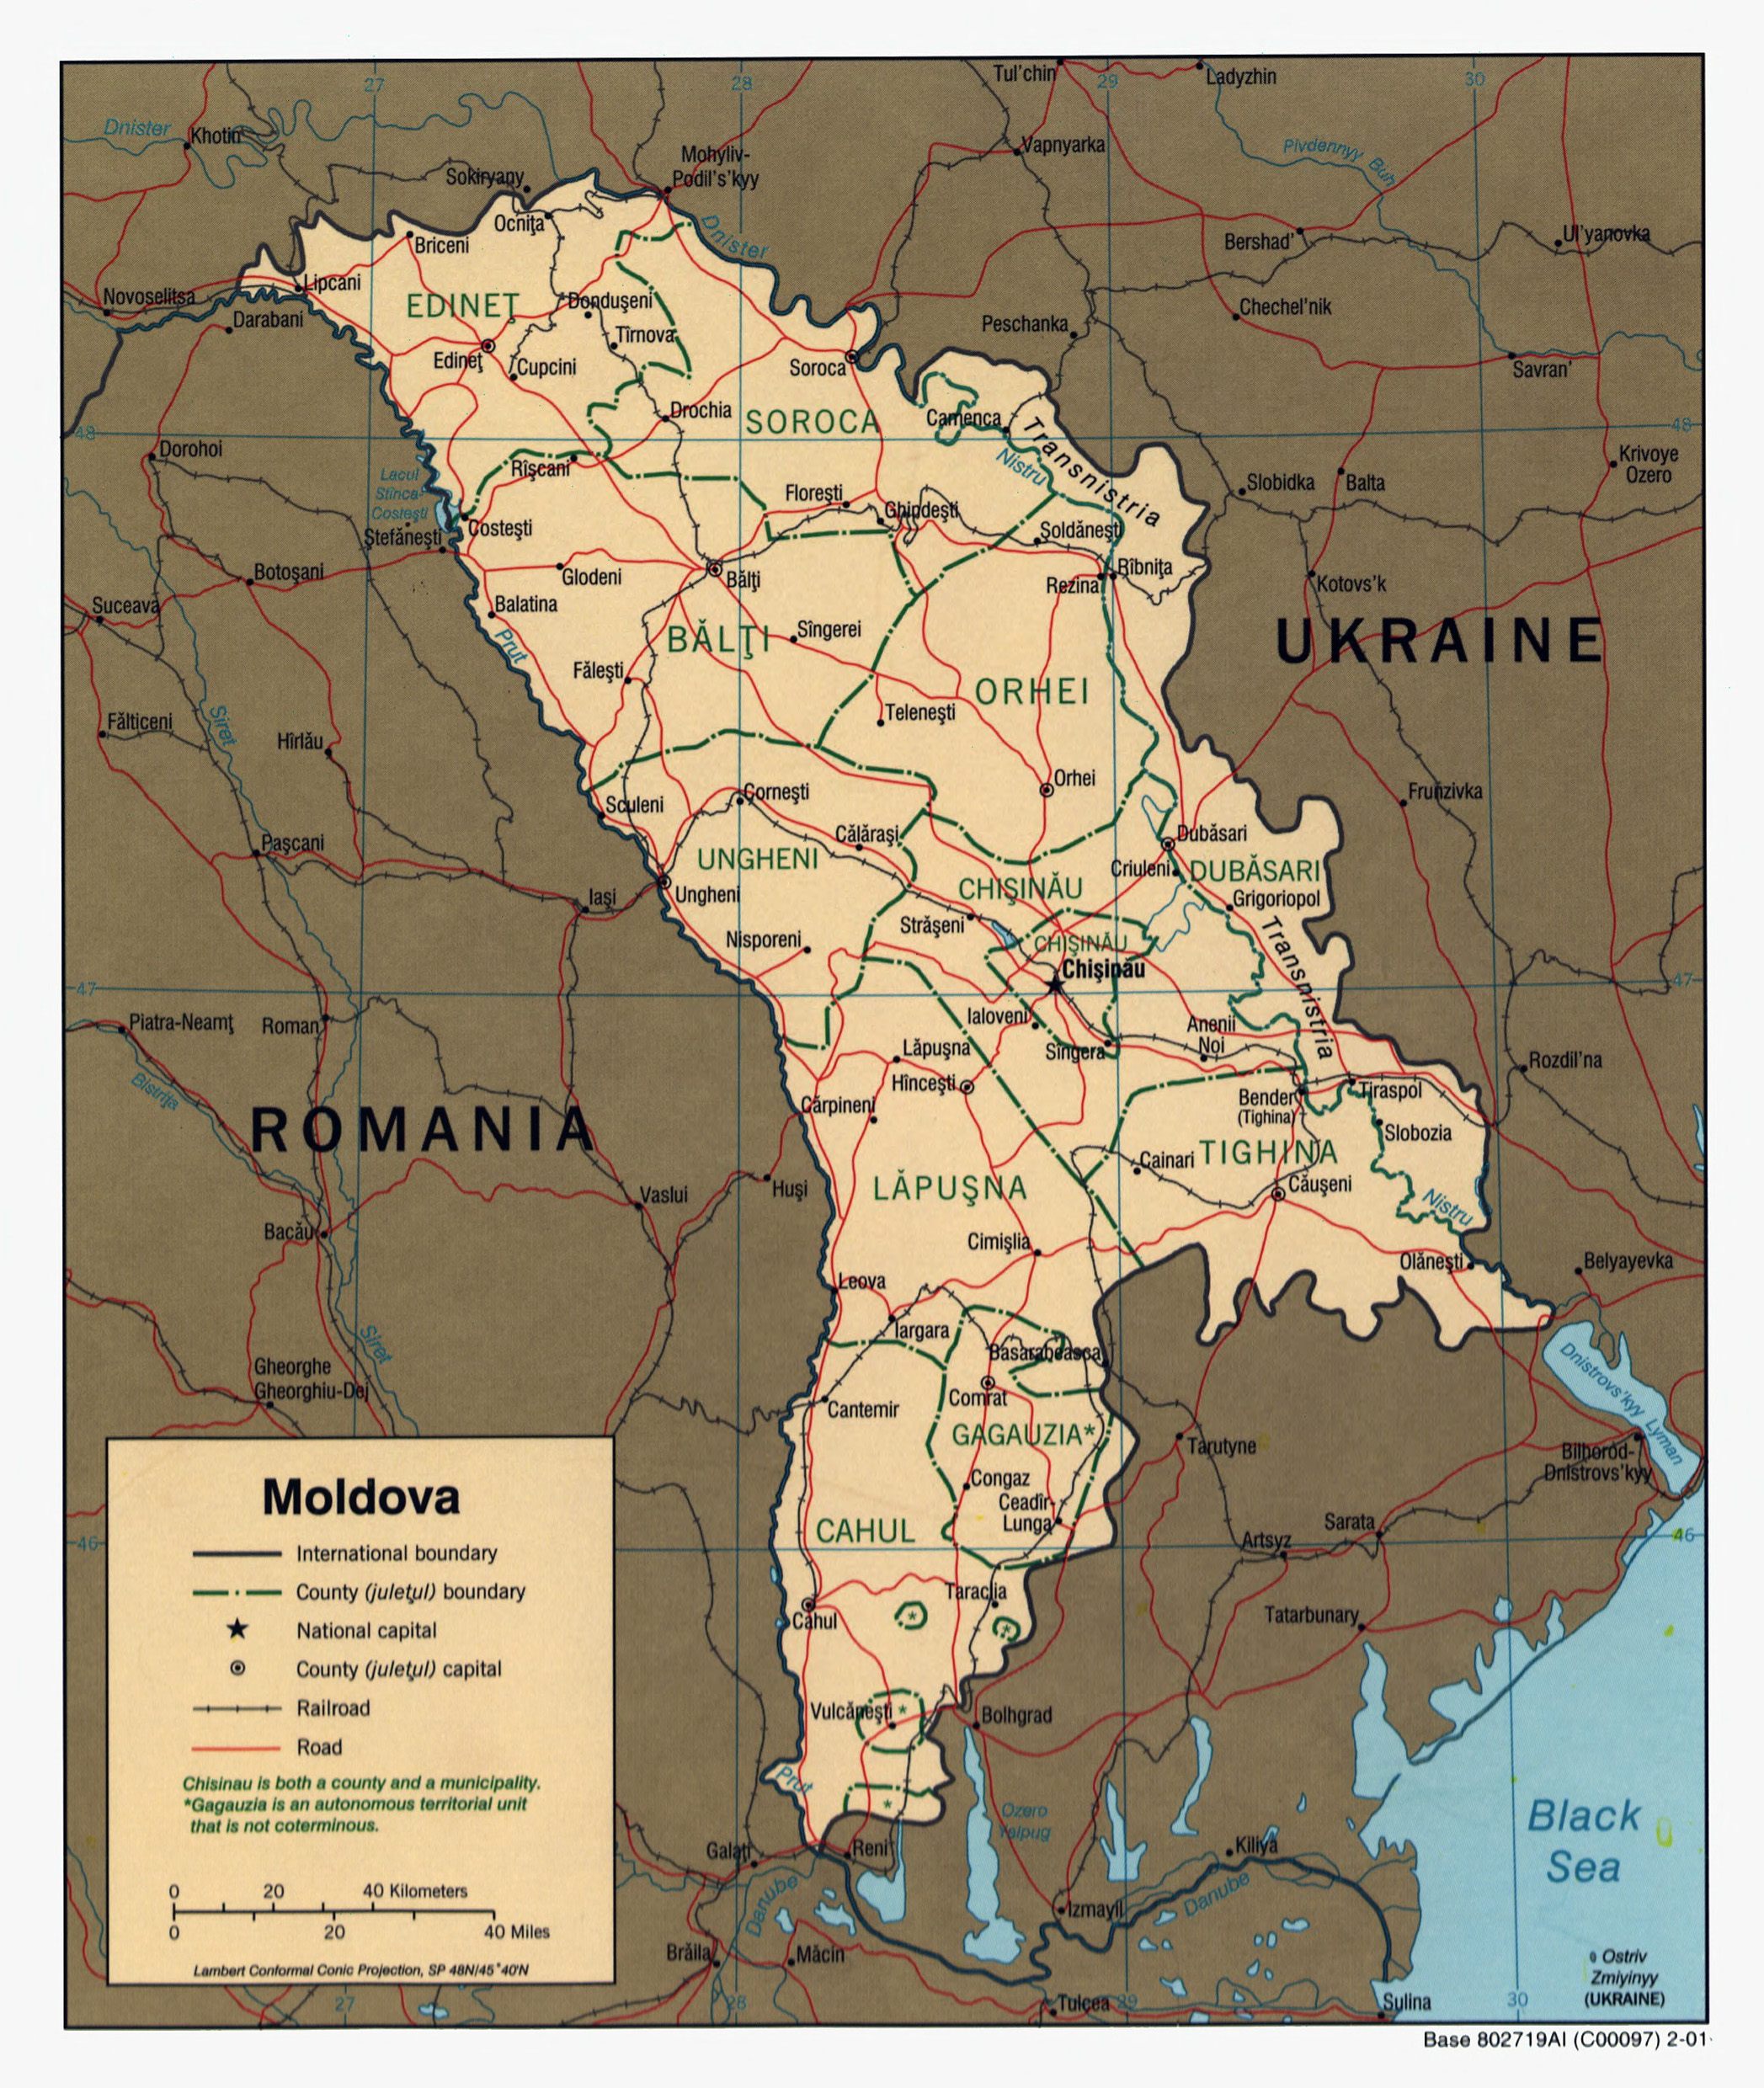 Large scale political and administrative map of Moldova with roads